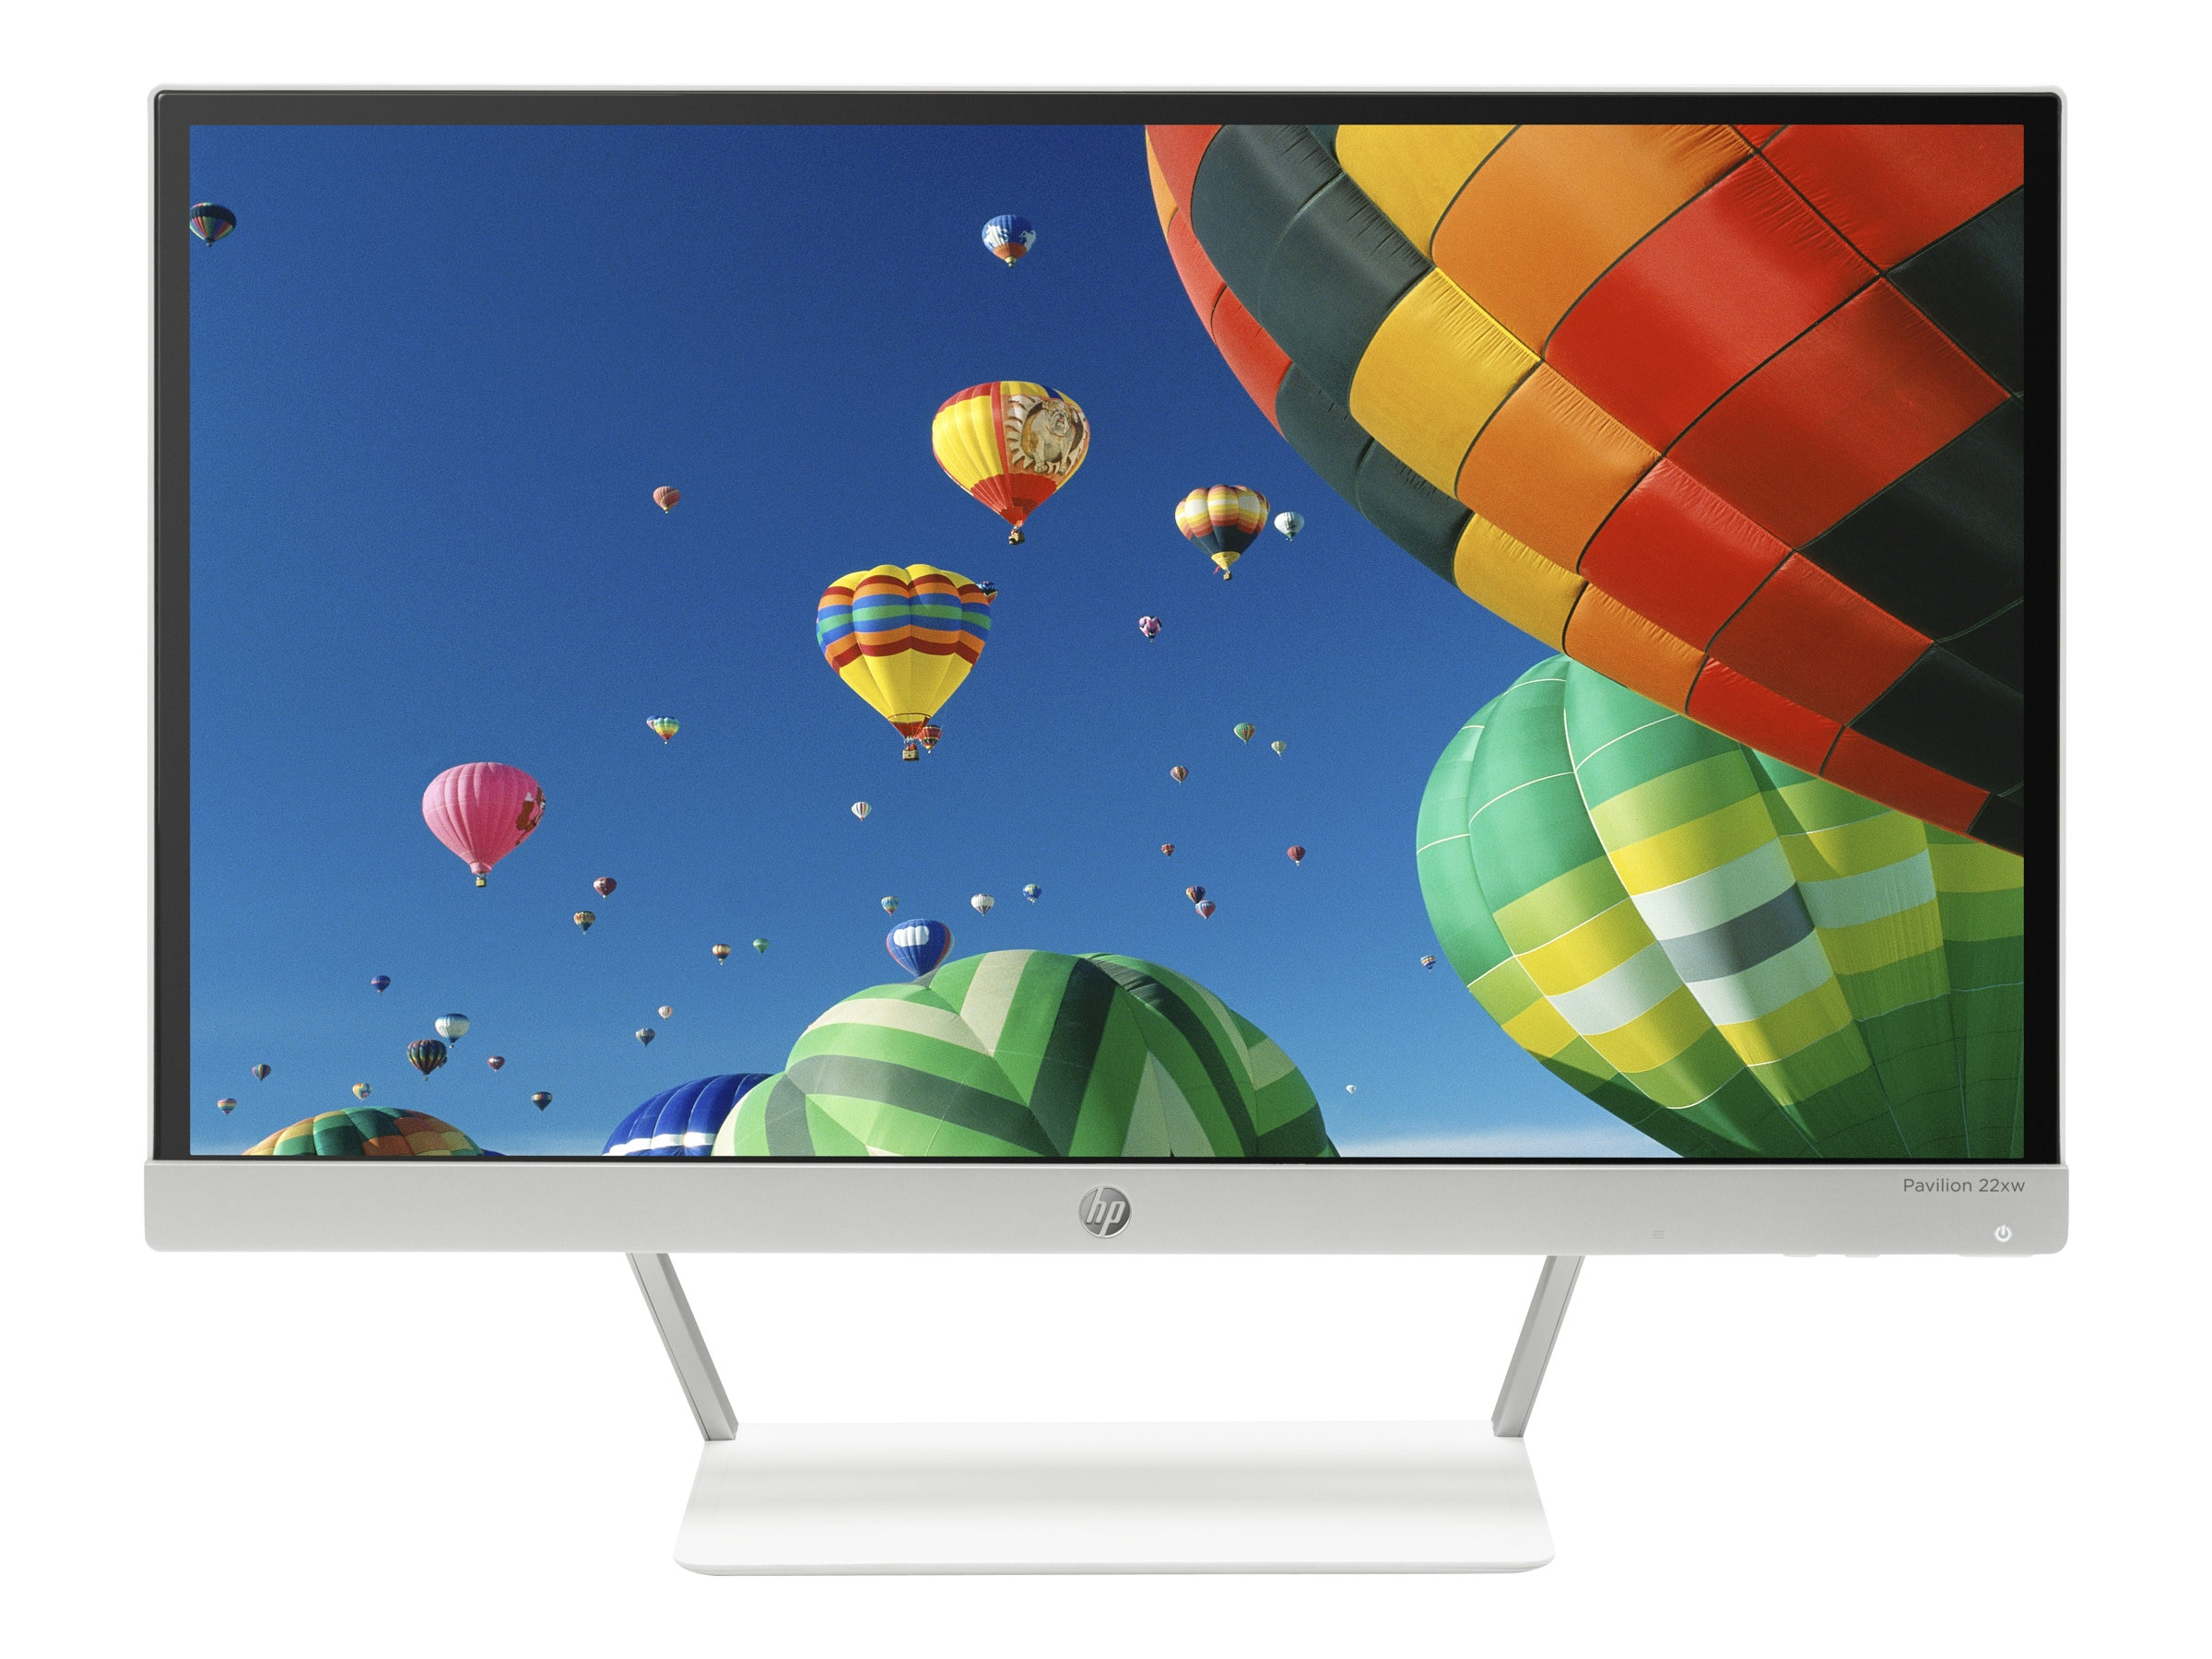 HP 21.5 Pavilion 22xw Full HD IPS LED-LCD Monitor, Black Silver, J7Y67AA#ABA, 18924885, Monitors - LED-LCD